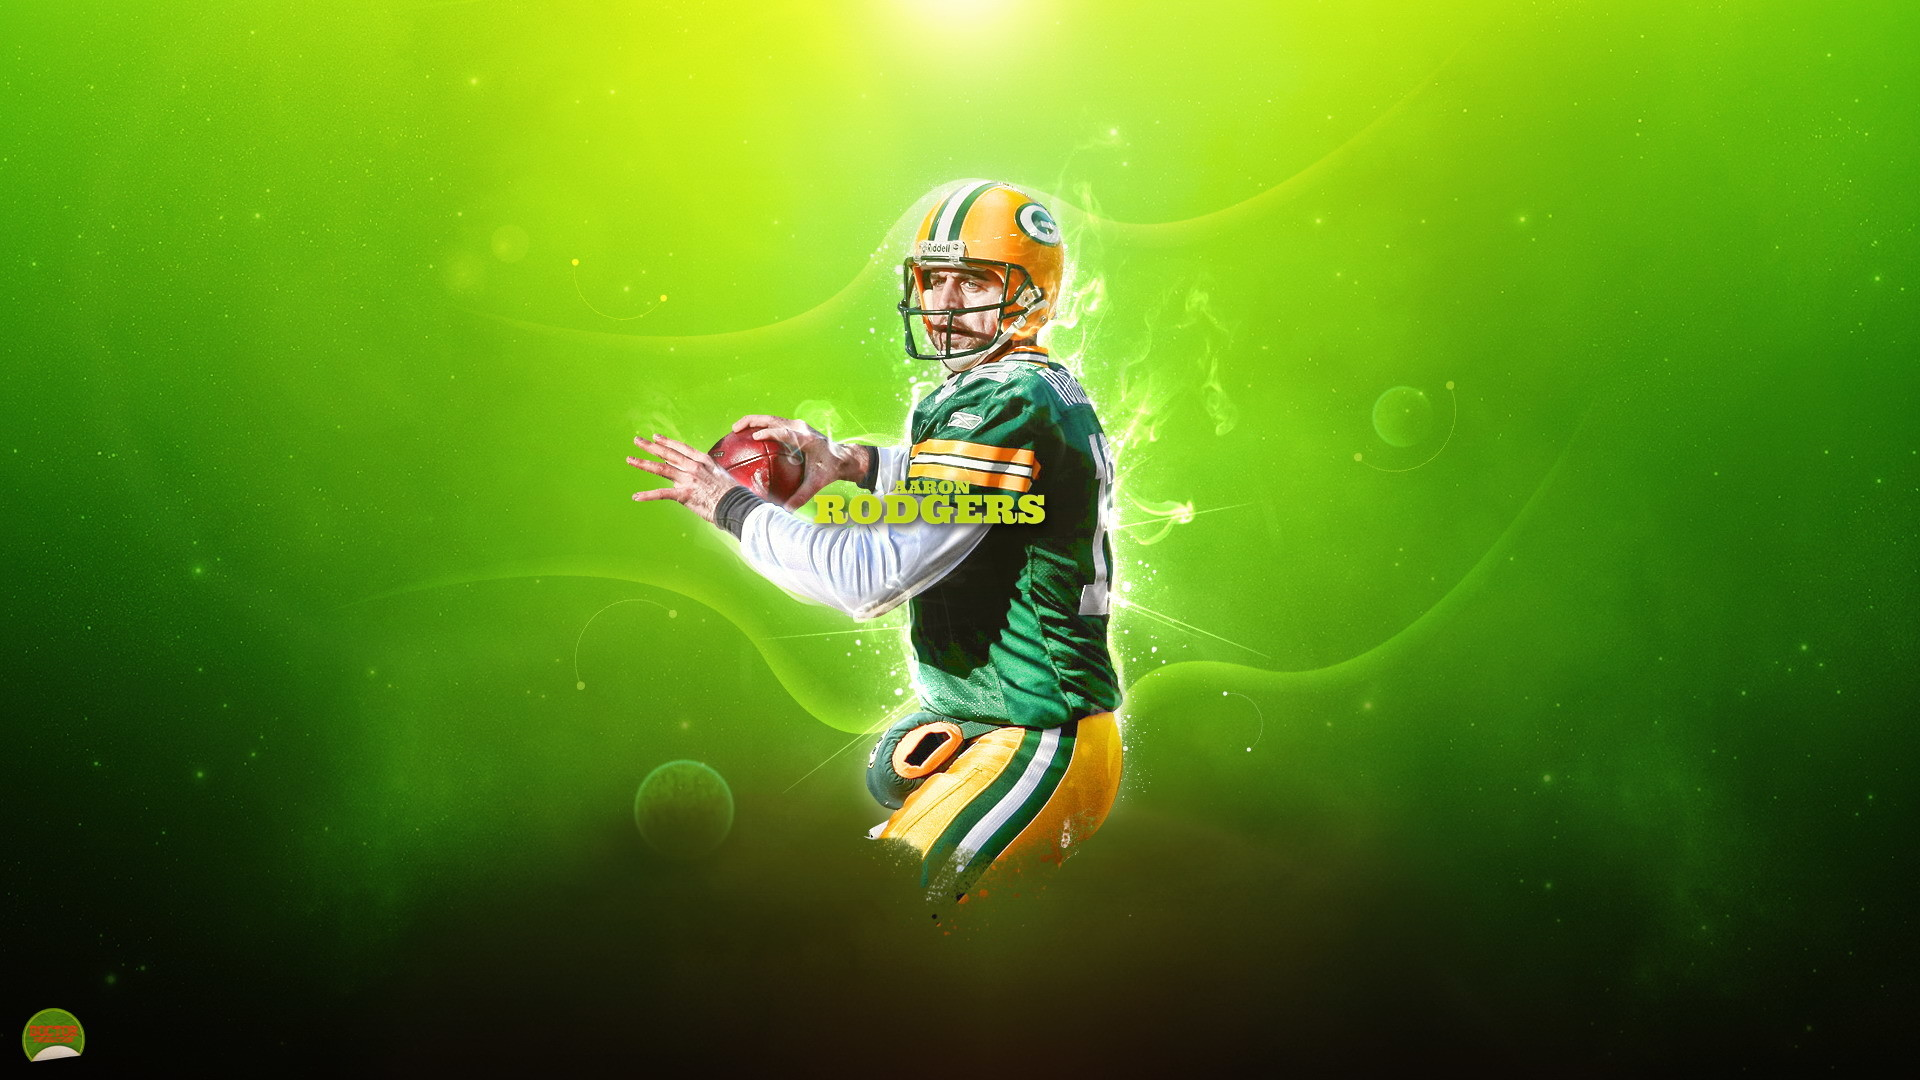 For Green Bay Packers Aaron Rodgers Wallpaper Green Bay Packers .